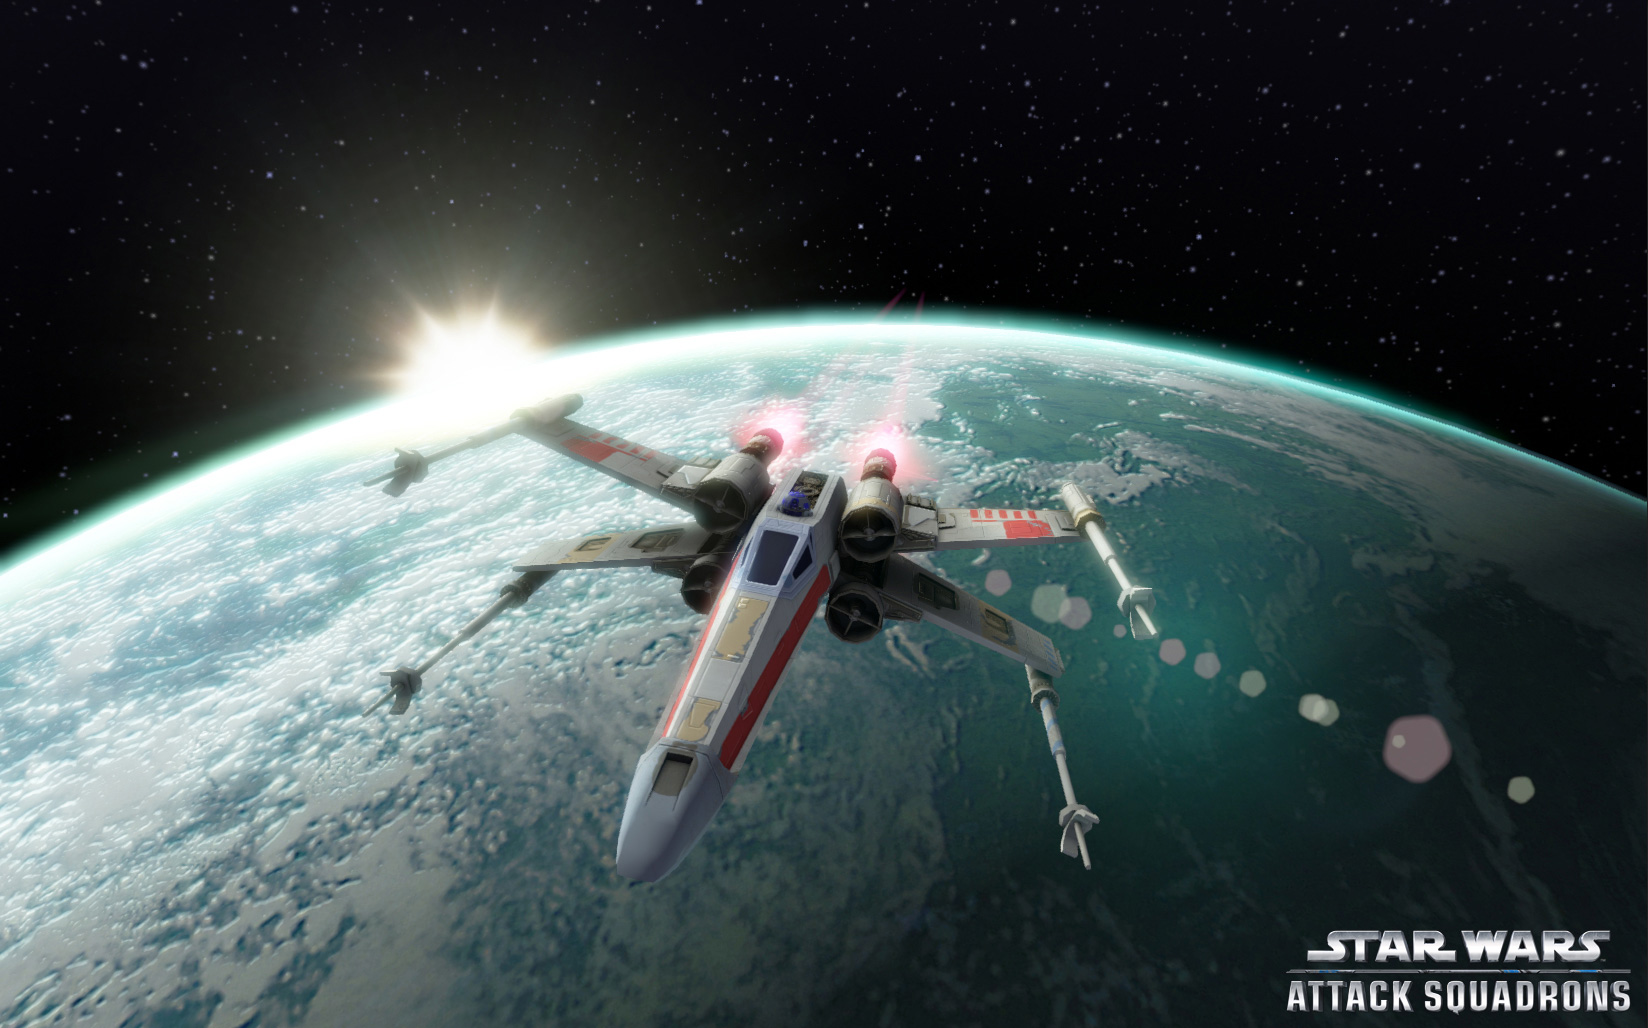 Star Wars: Attack Squadrons – it just impacted on the surface